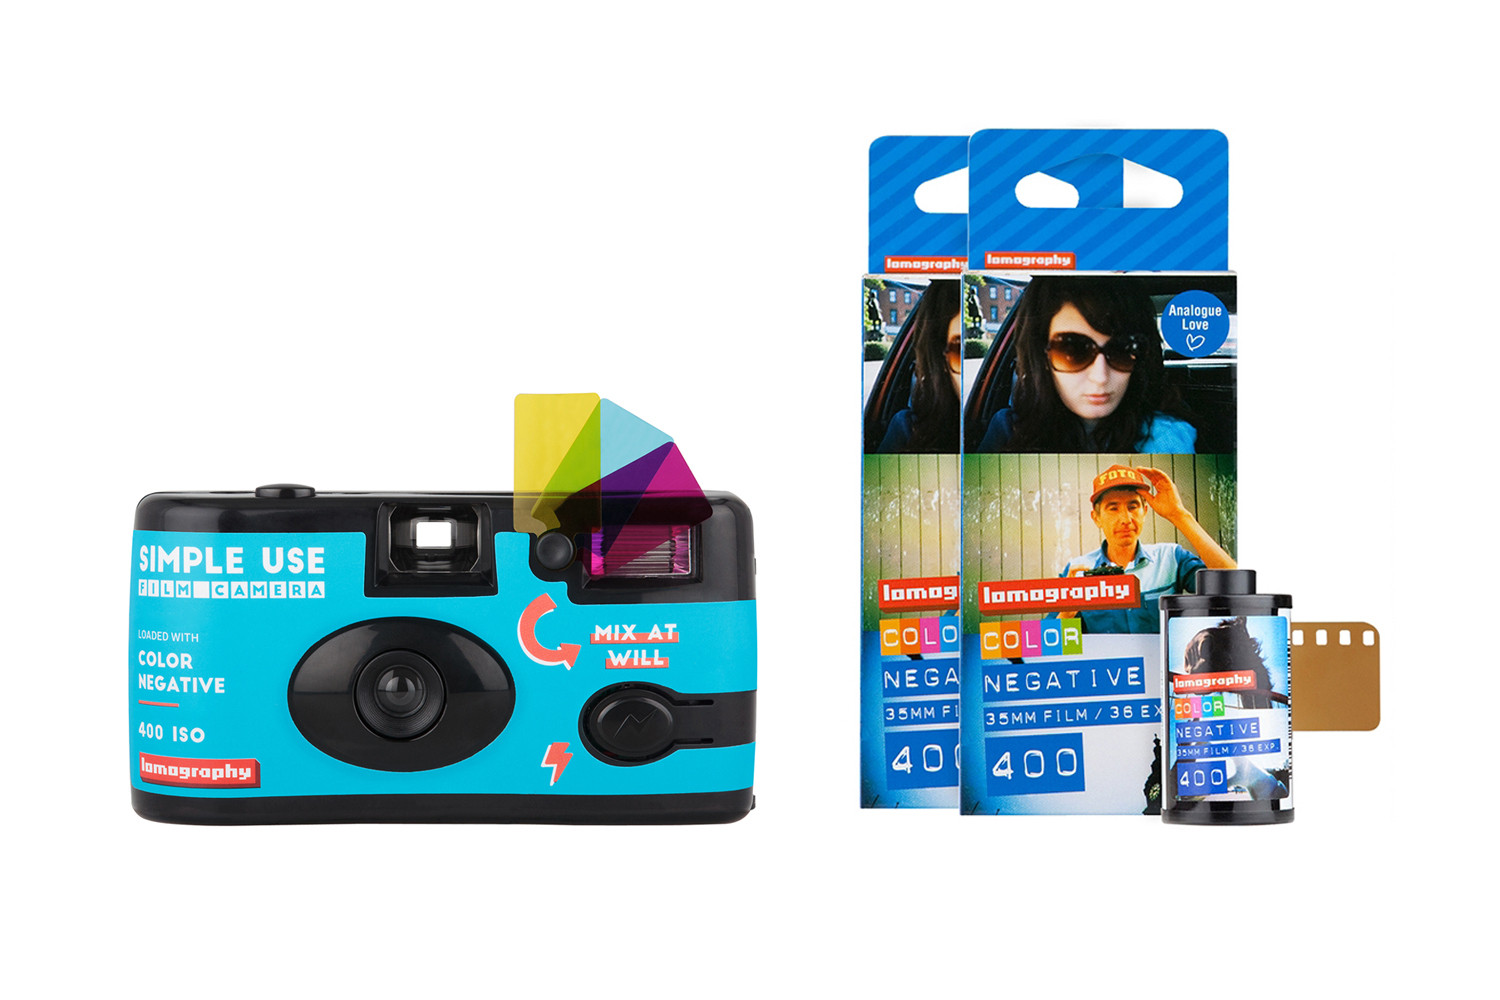 Simple Use Film Camera Reload Kit Color Negative